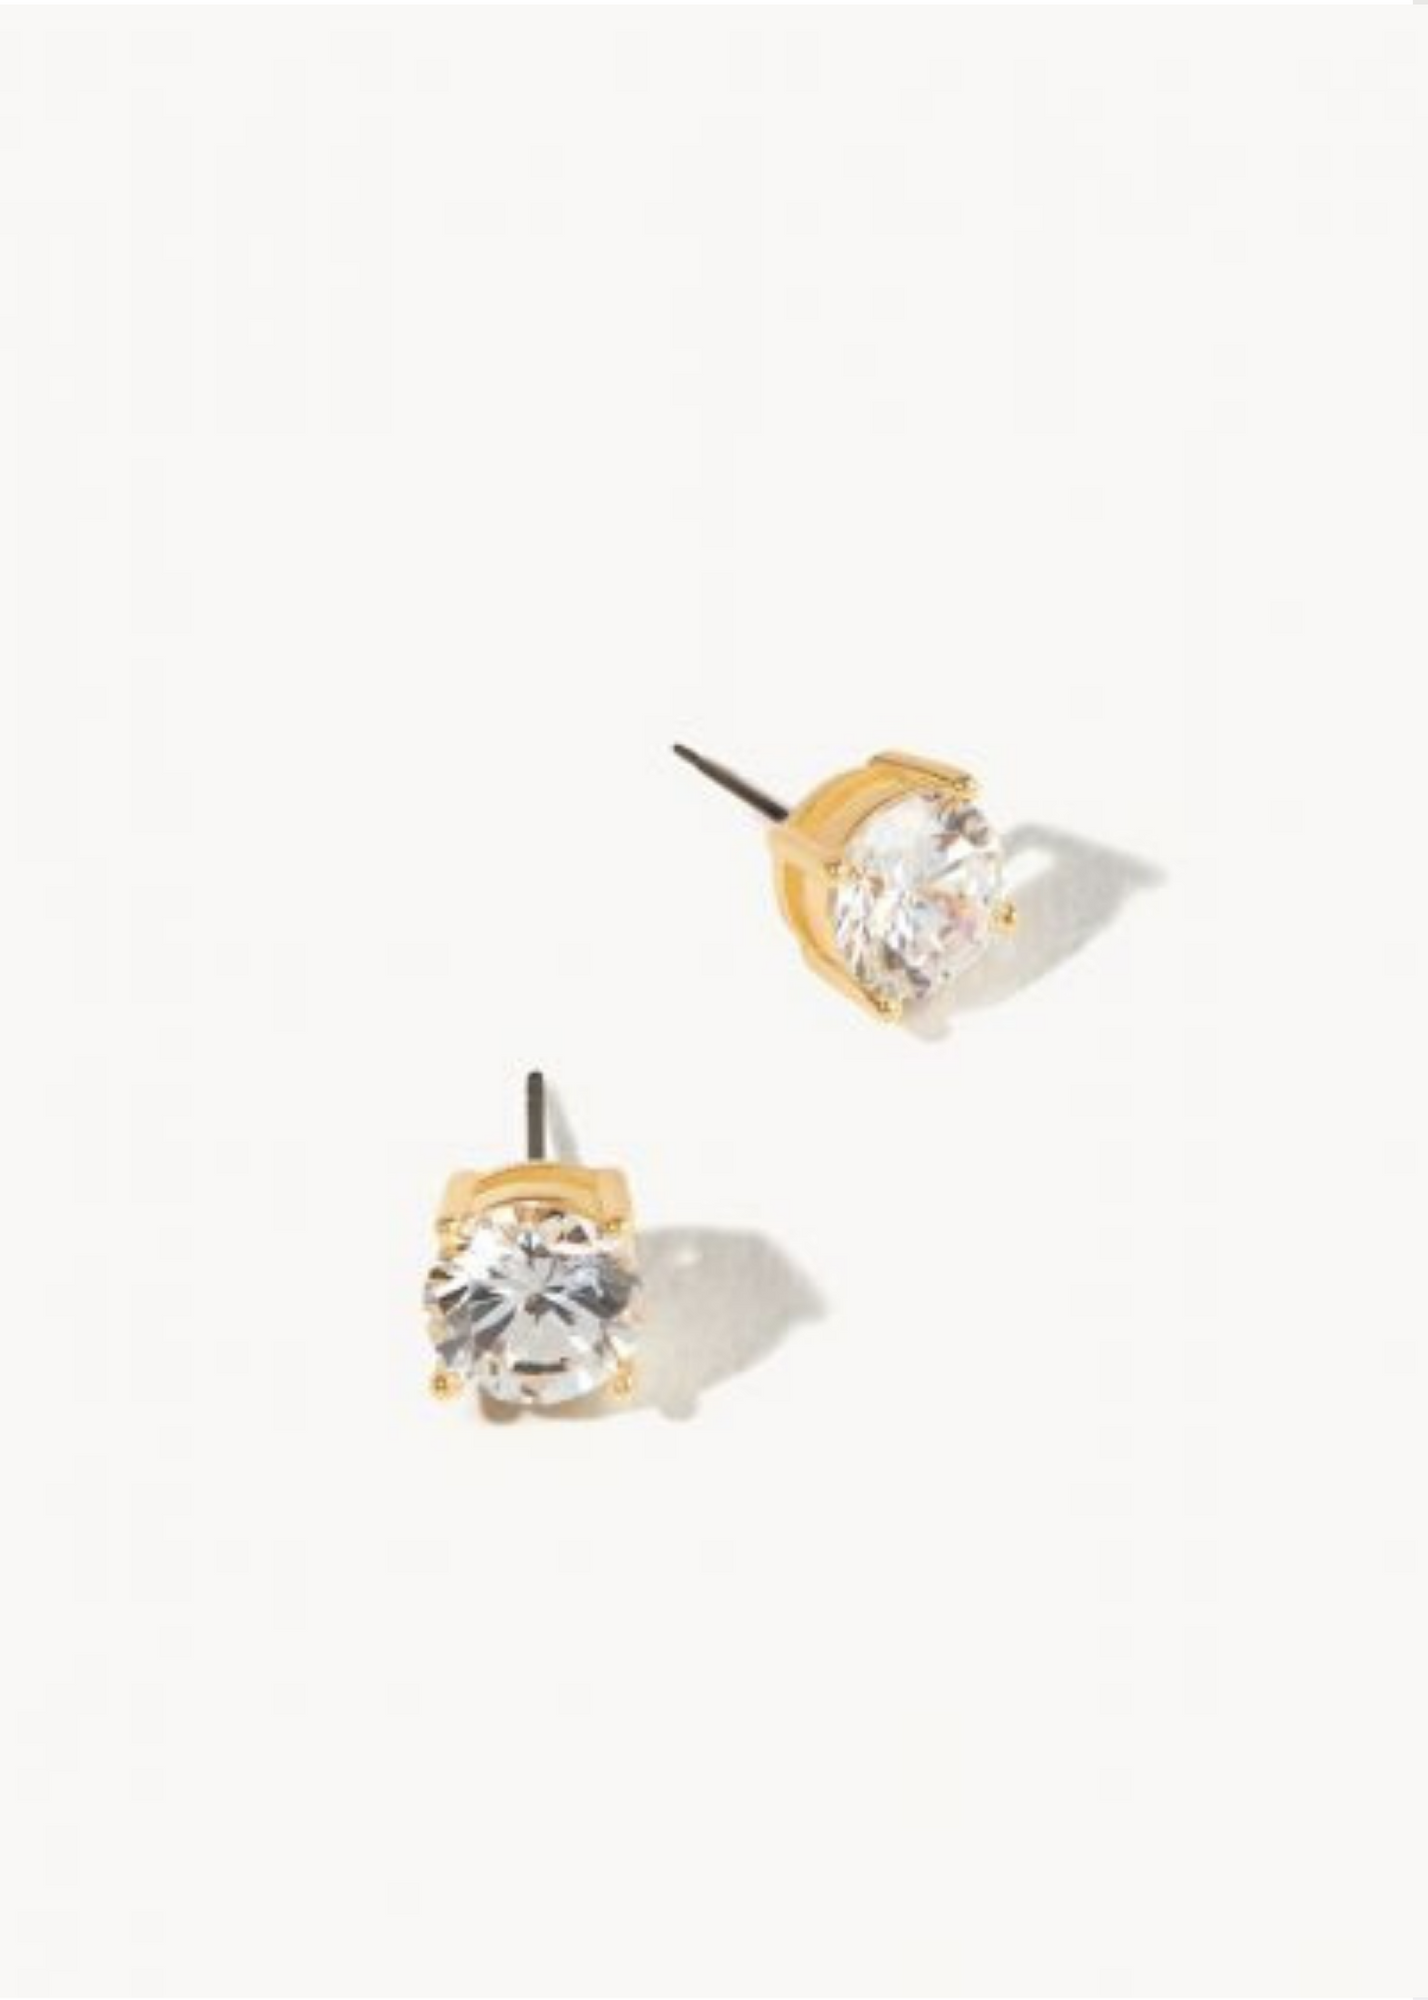 DELICATE SPARKLE STUD EARRINGS - Gold/crystal